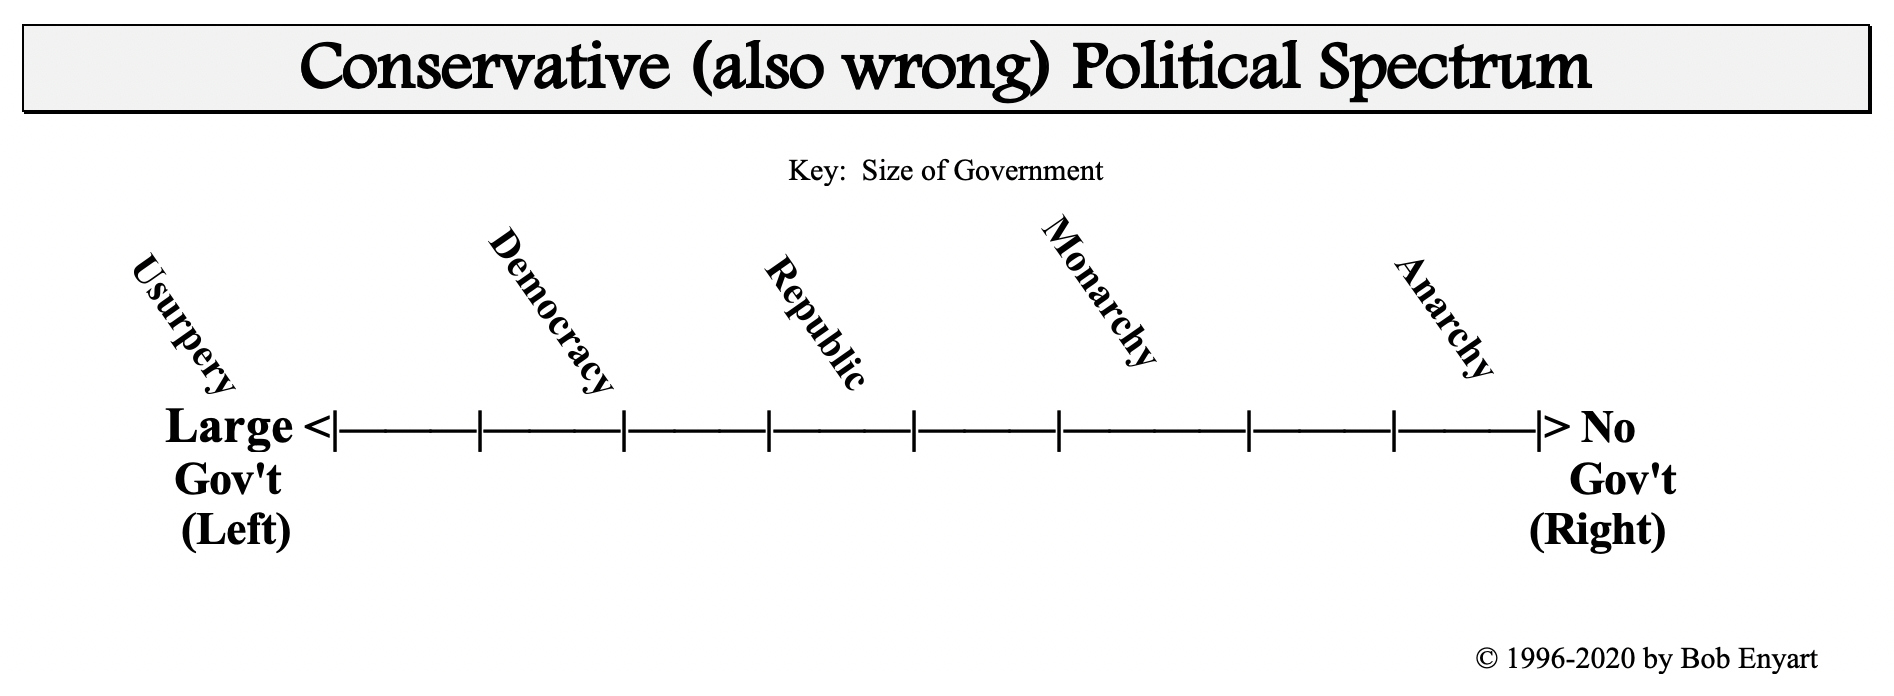 Political Spectrum: Rightwing (conservative) i.e., wrong view